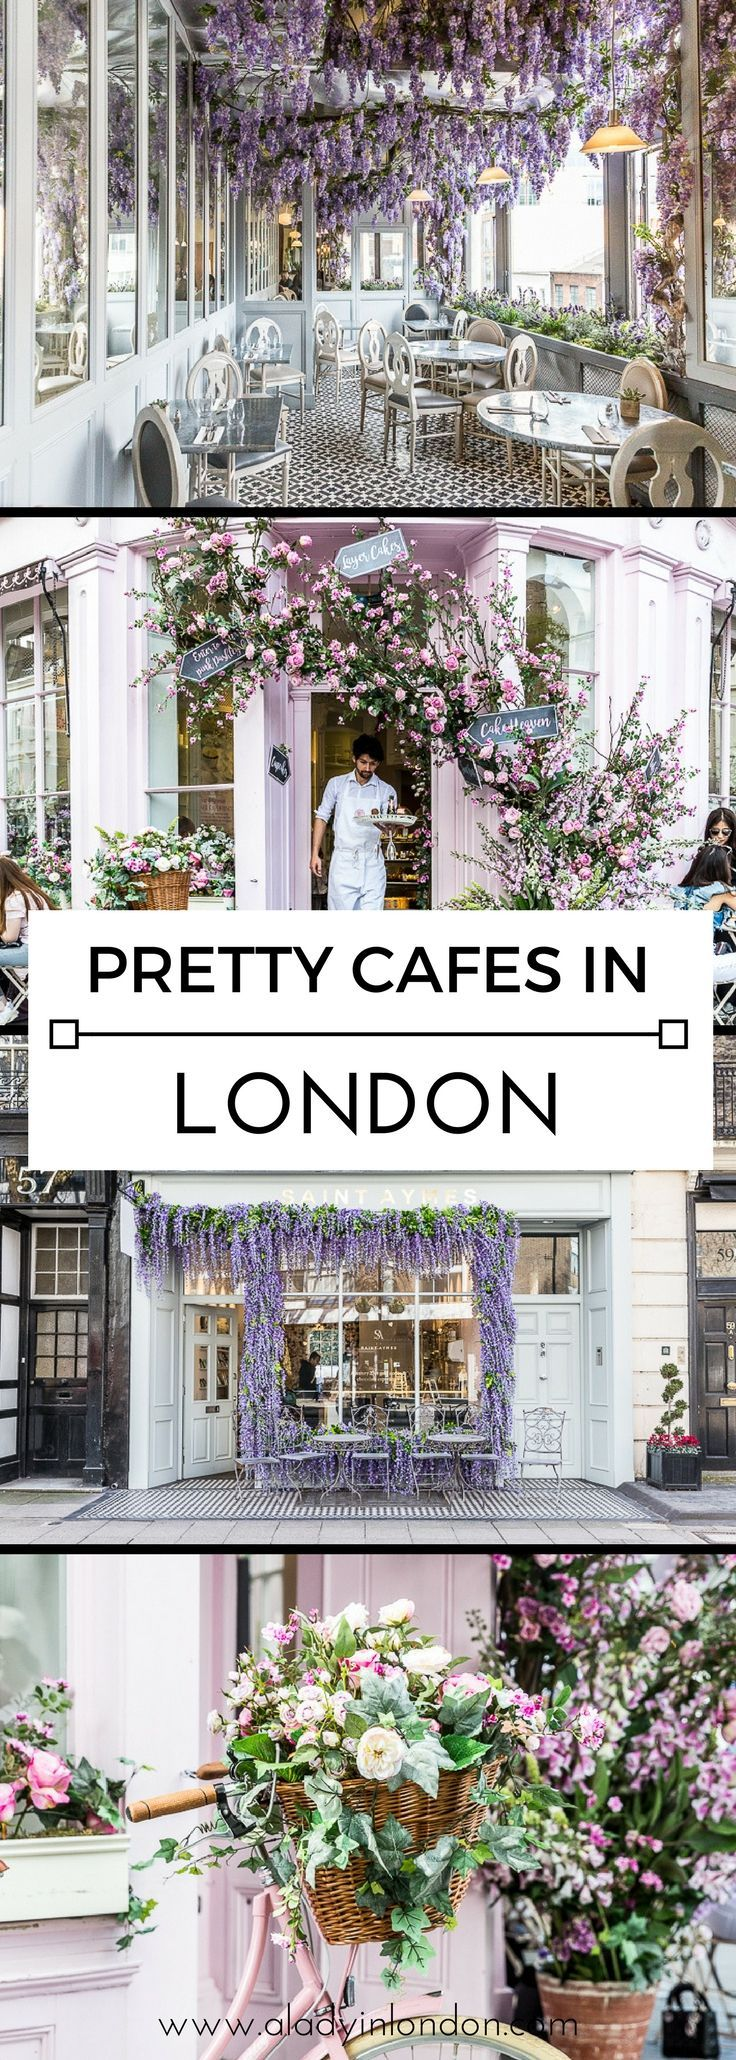 7 Pretty Cafes in London – You Have to See These P…